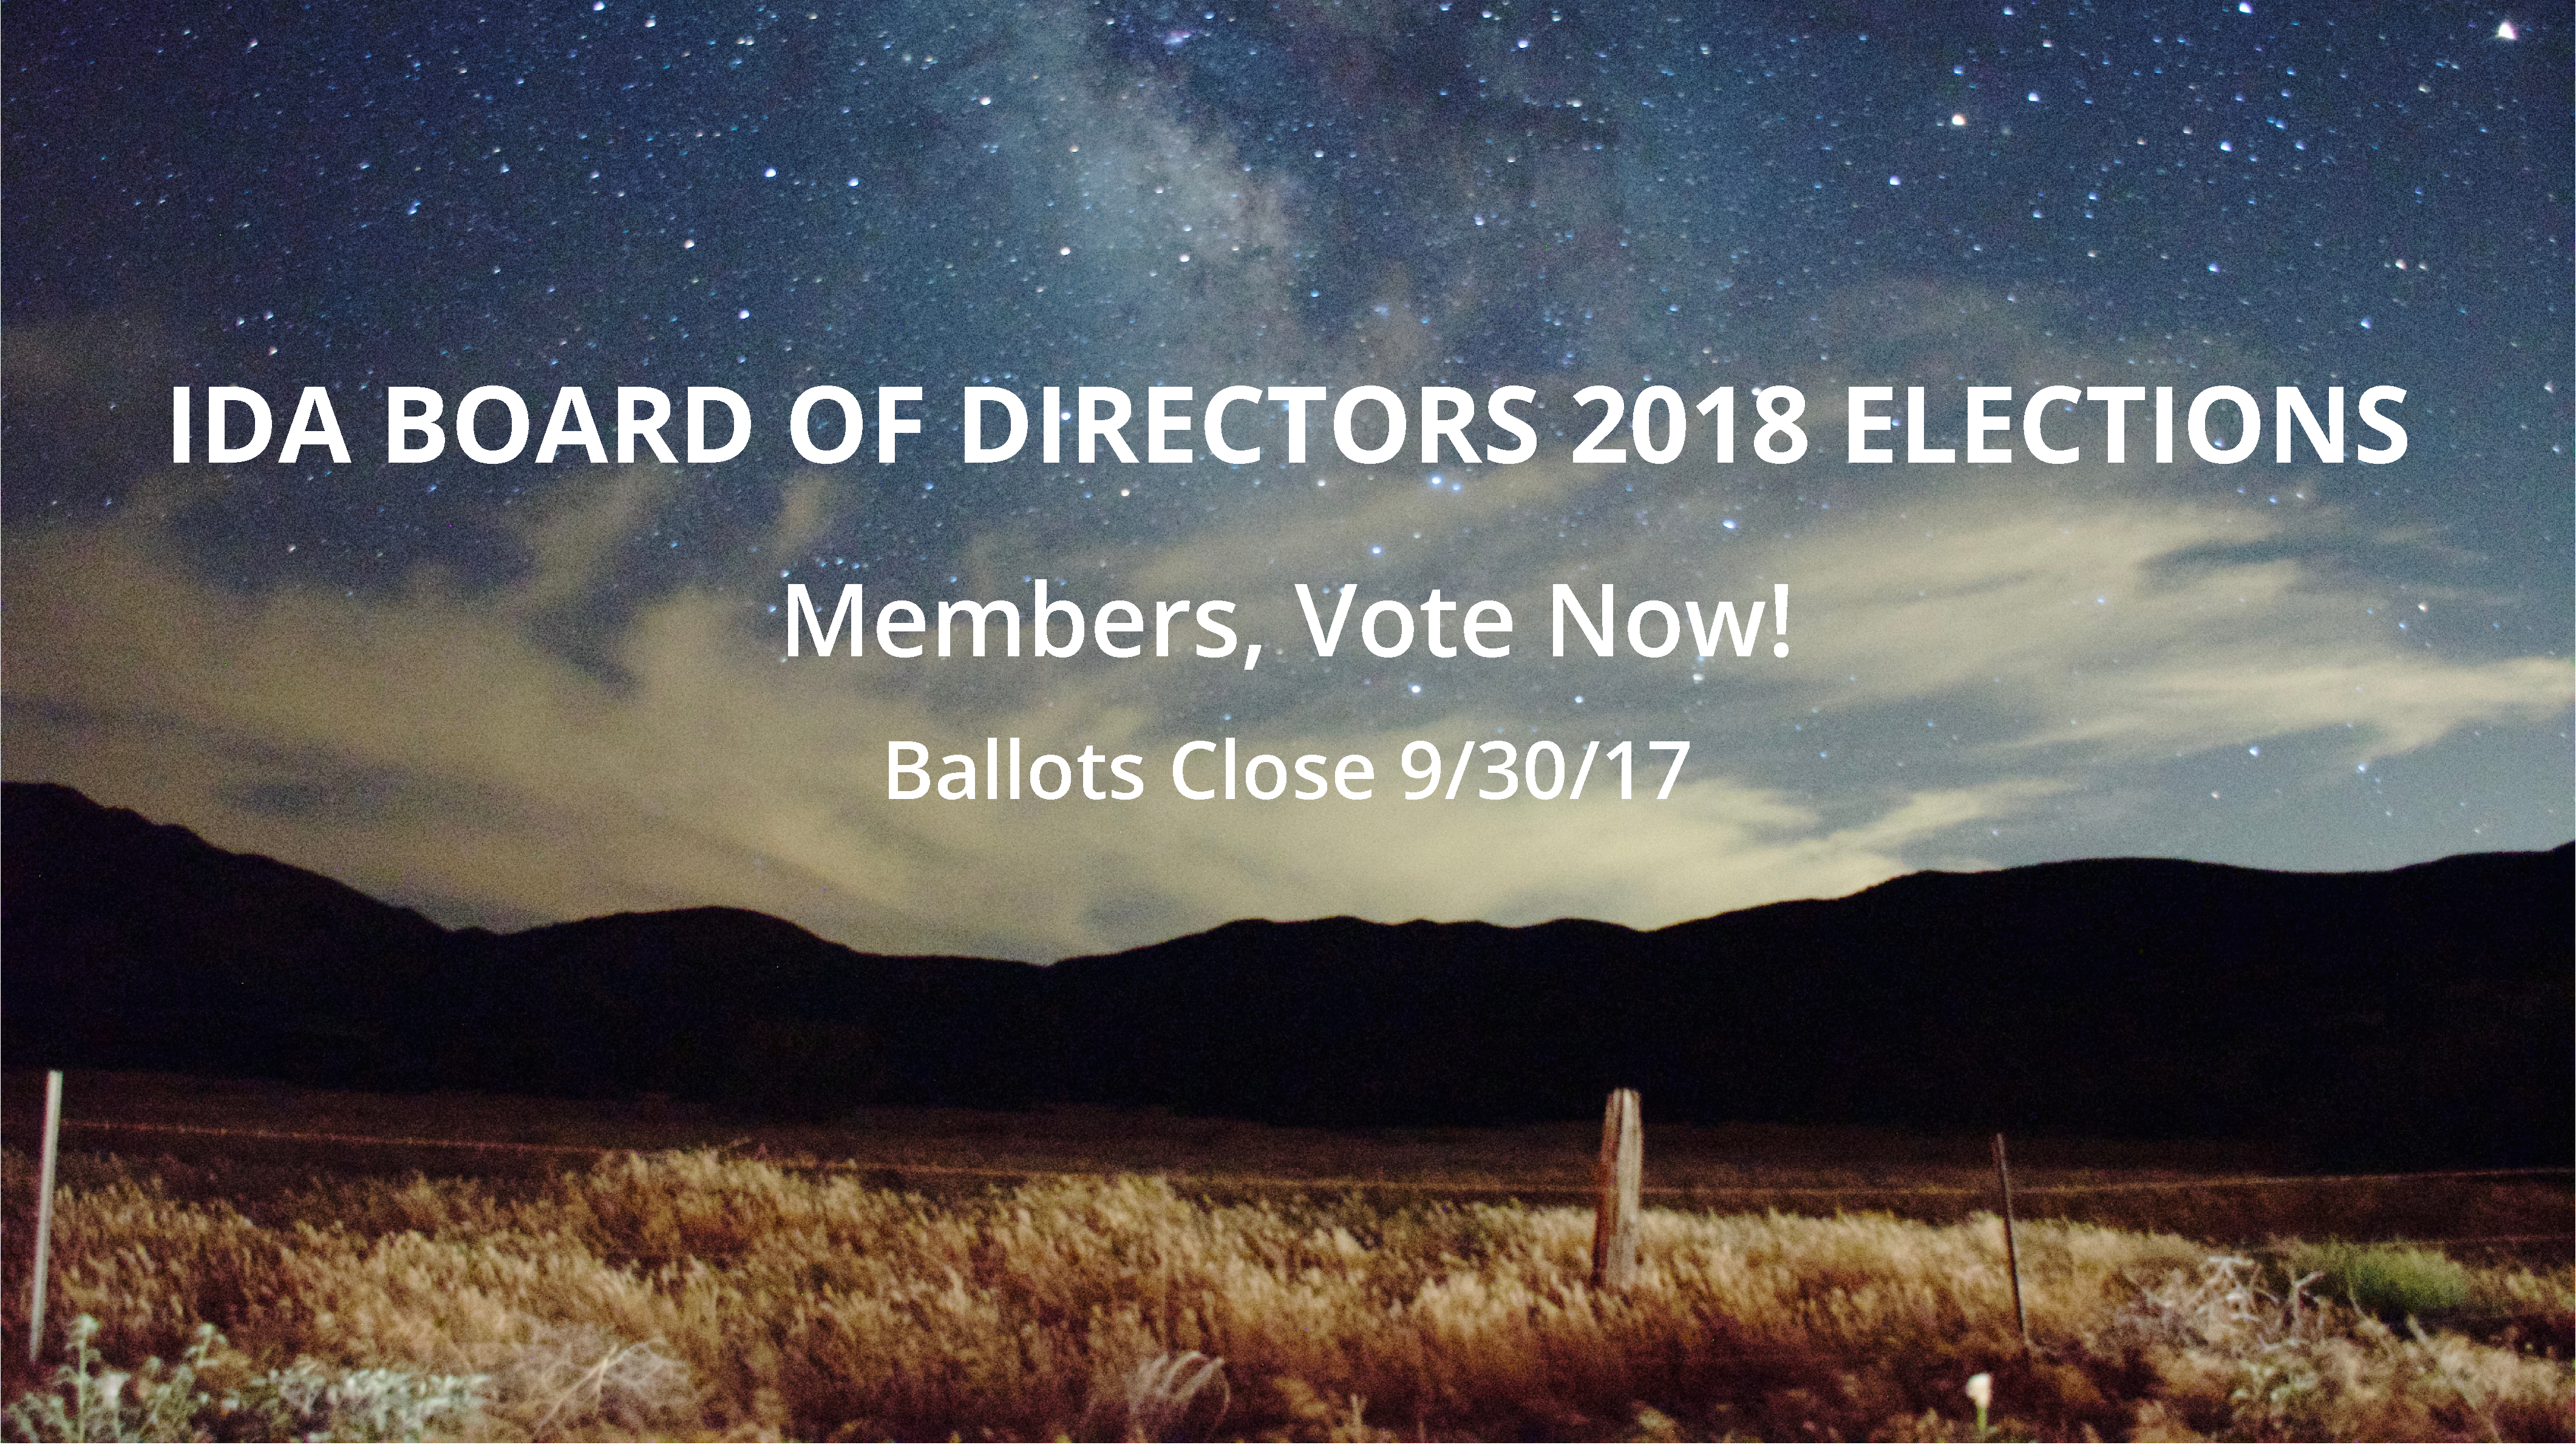 Members! Cast Your Vote for the IDA 2018 Board of Directors Before September 30 Image